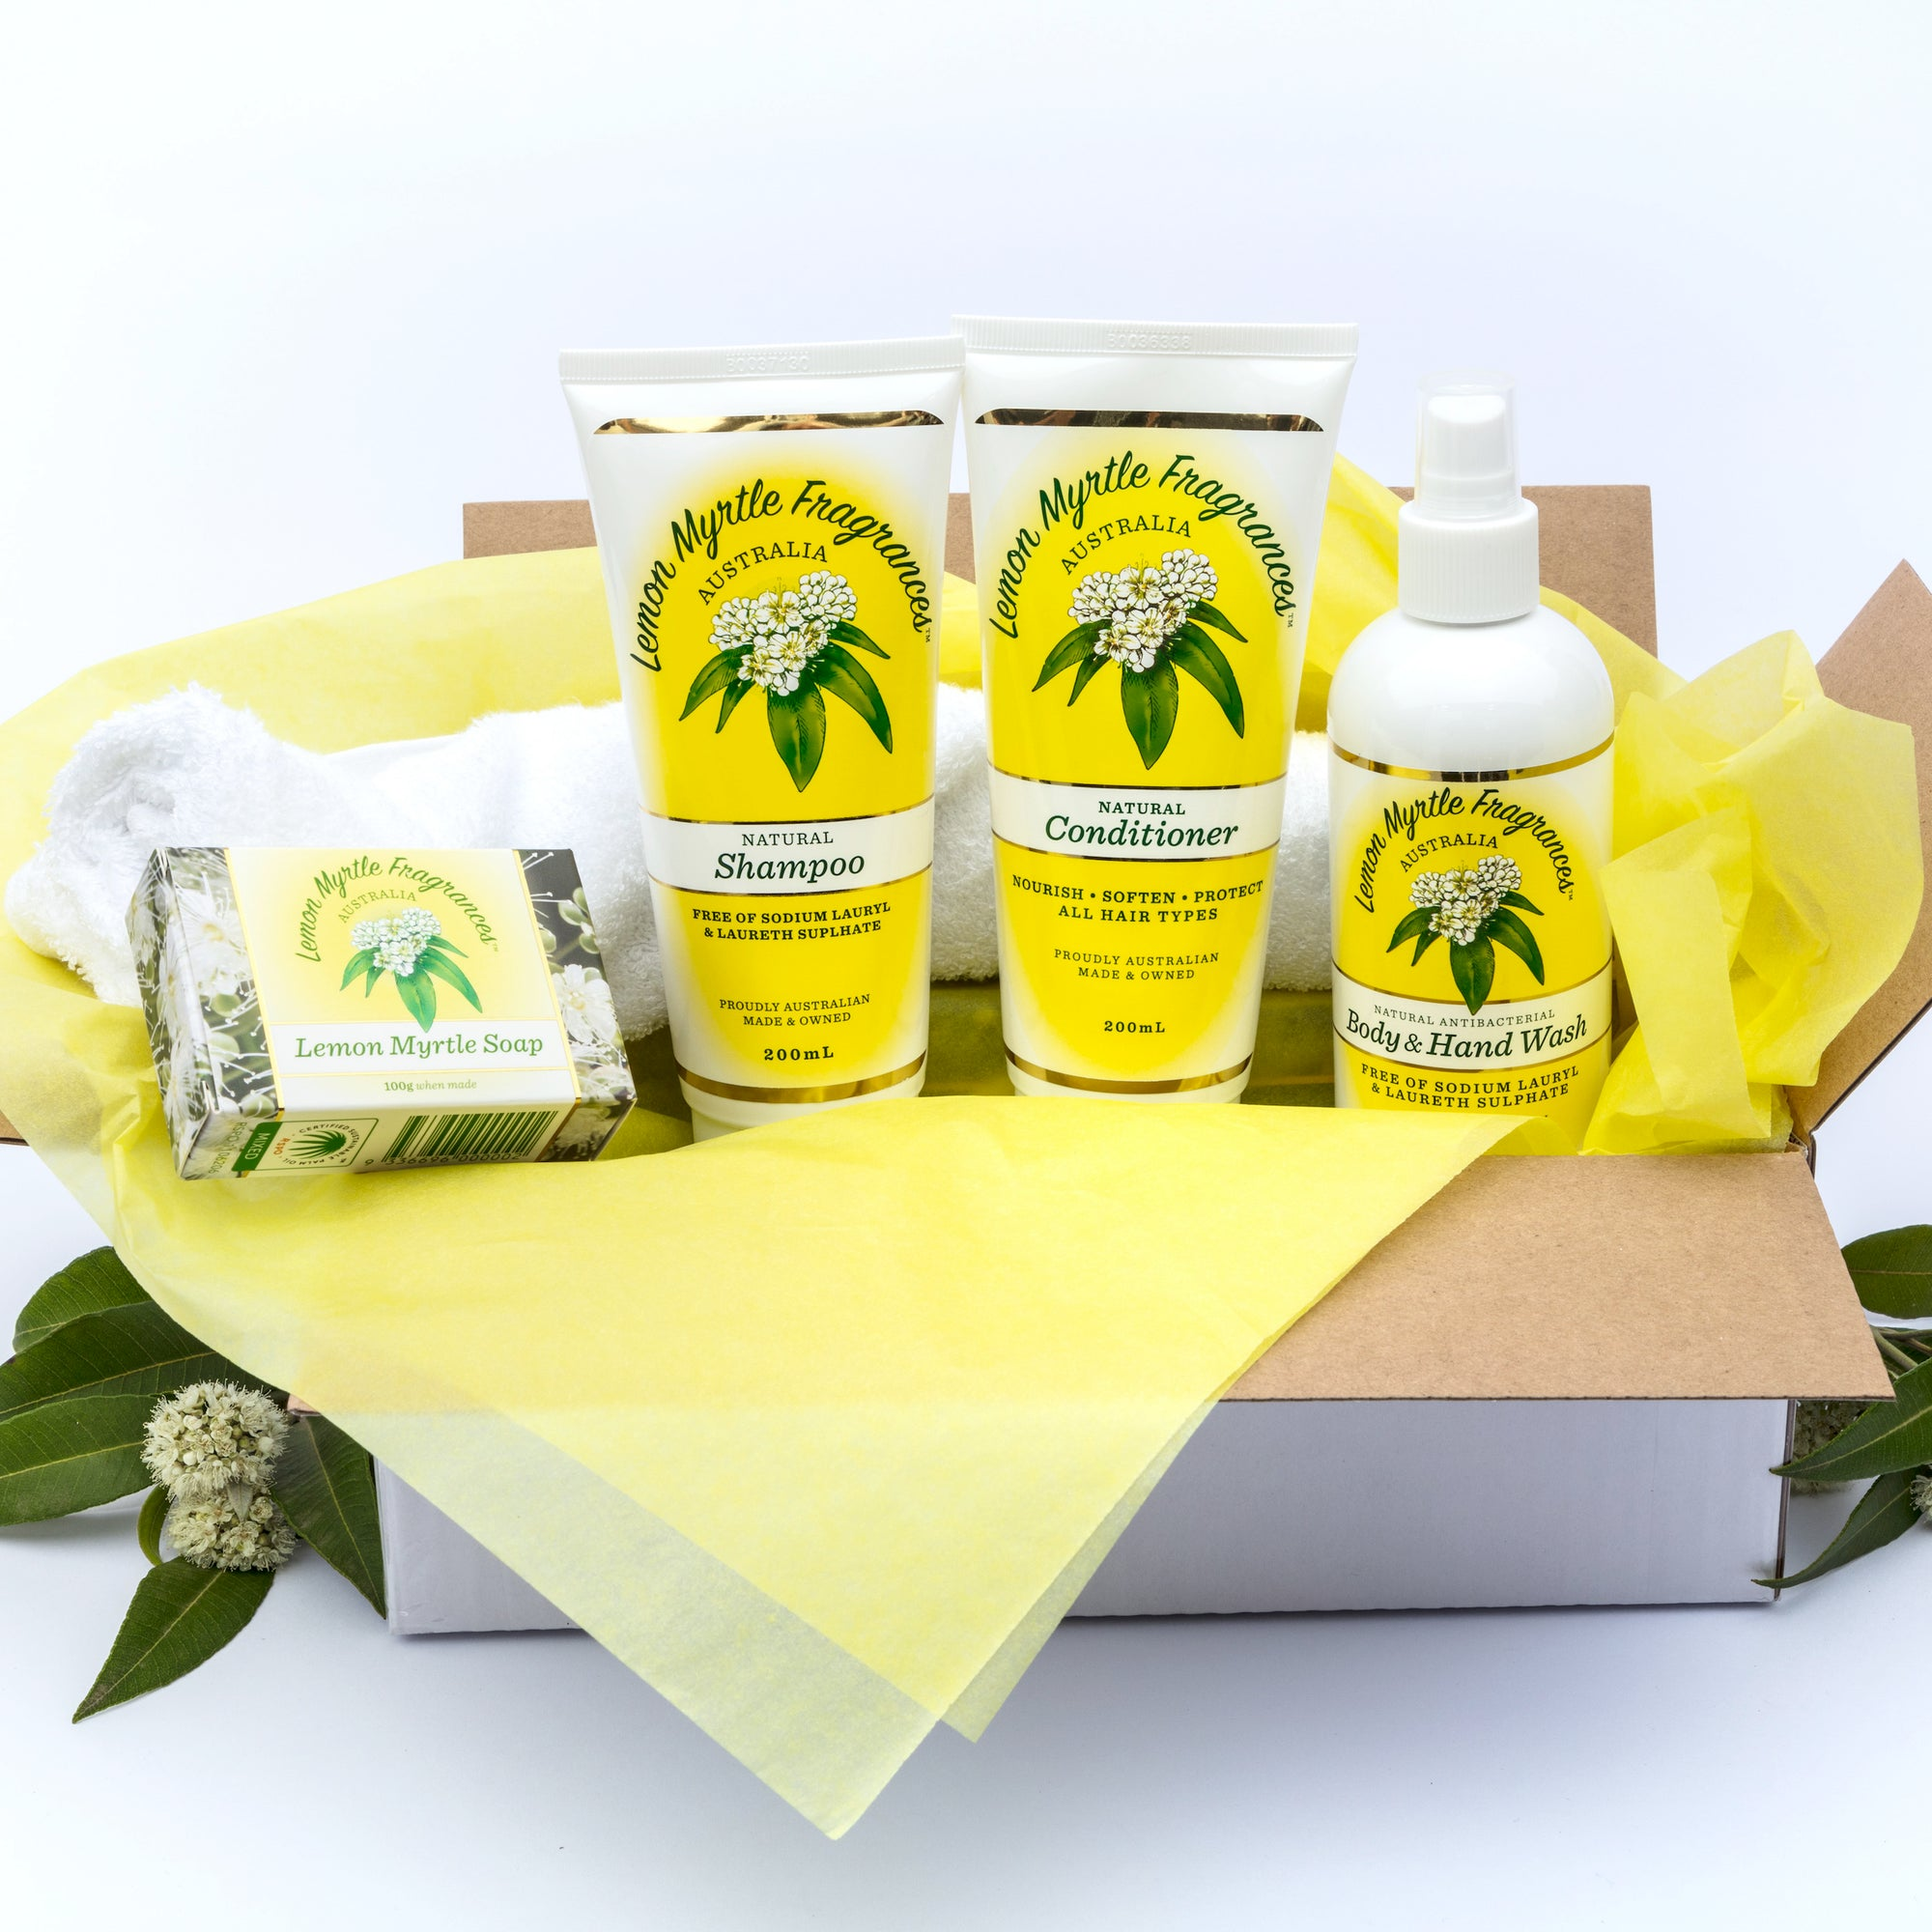 Natural Lemon Myrtle Shower Pamper Gift Box